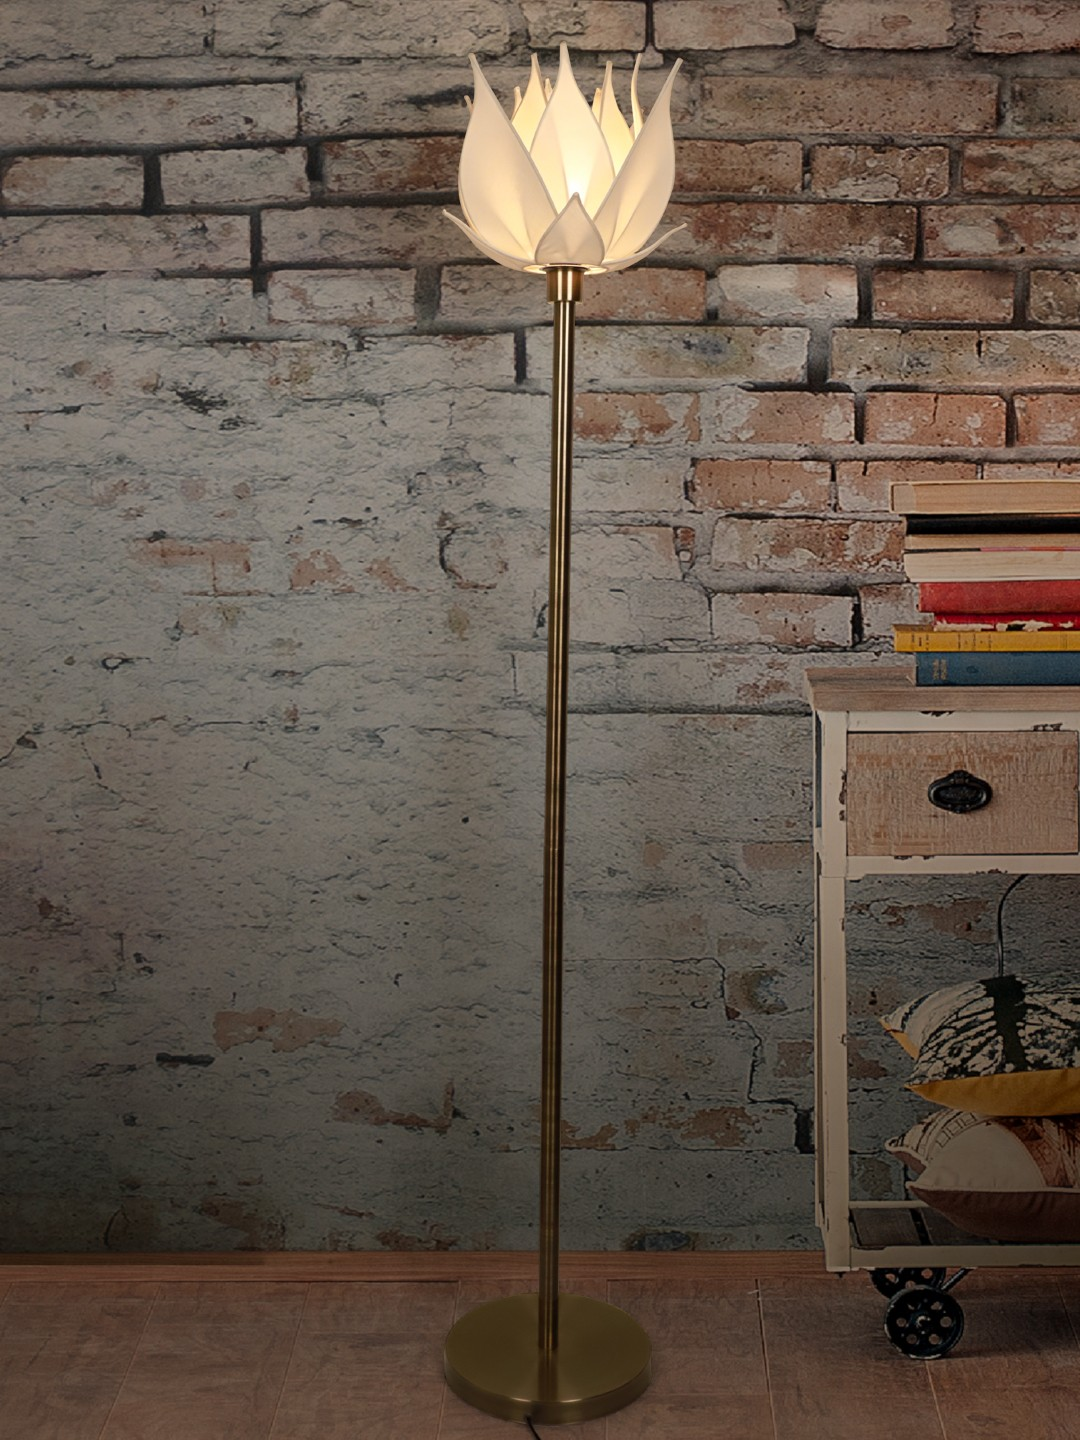 Auspicious Ivory Blooming Lotus Antique Brass Floor Lamp